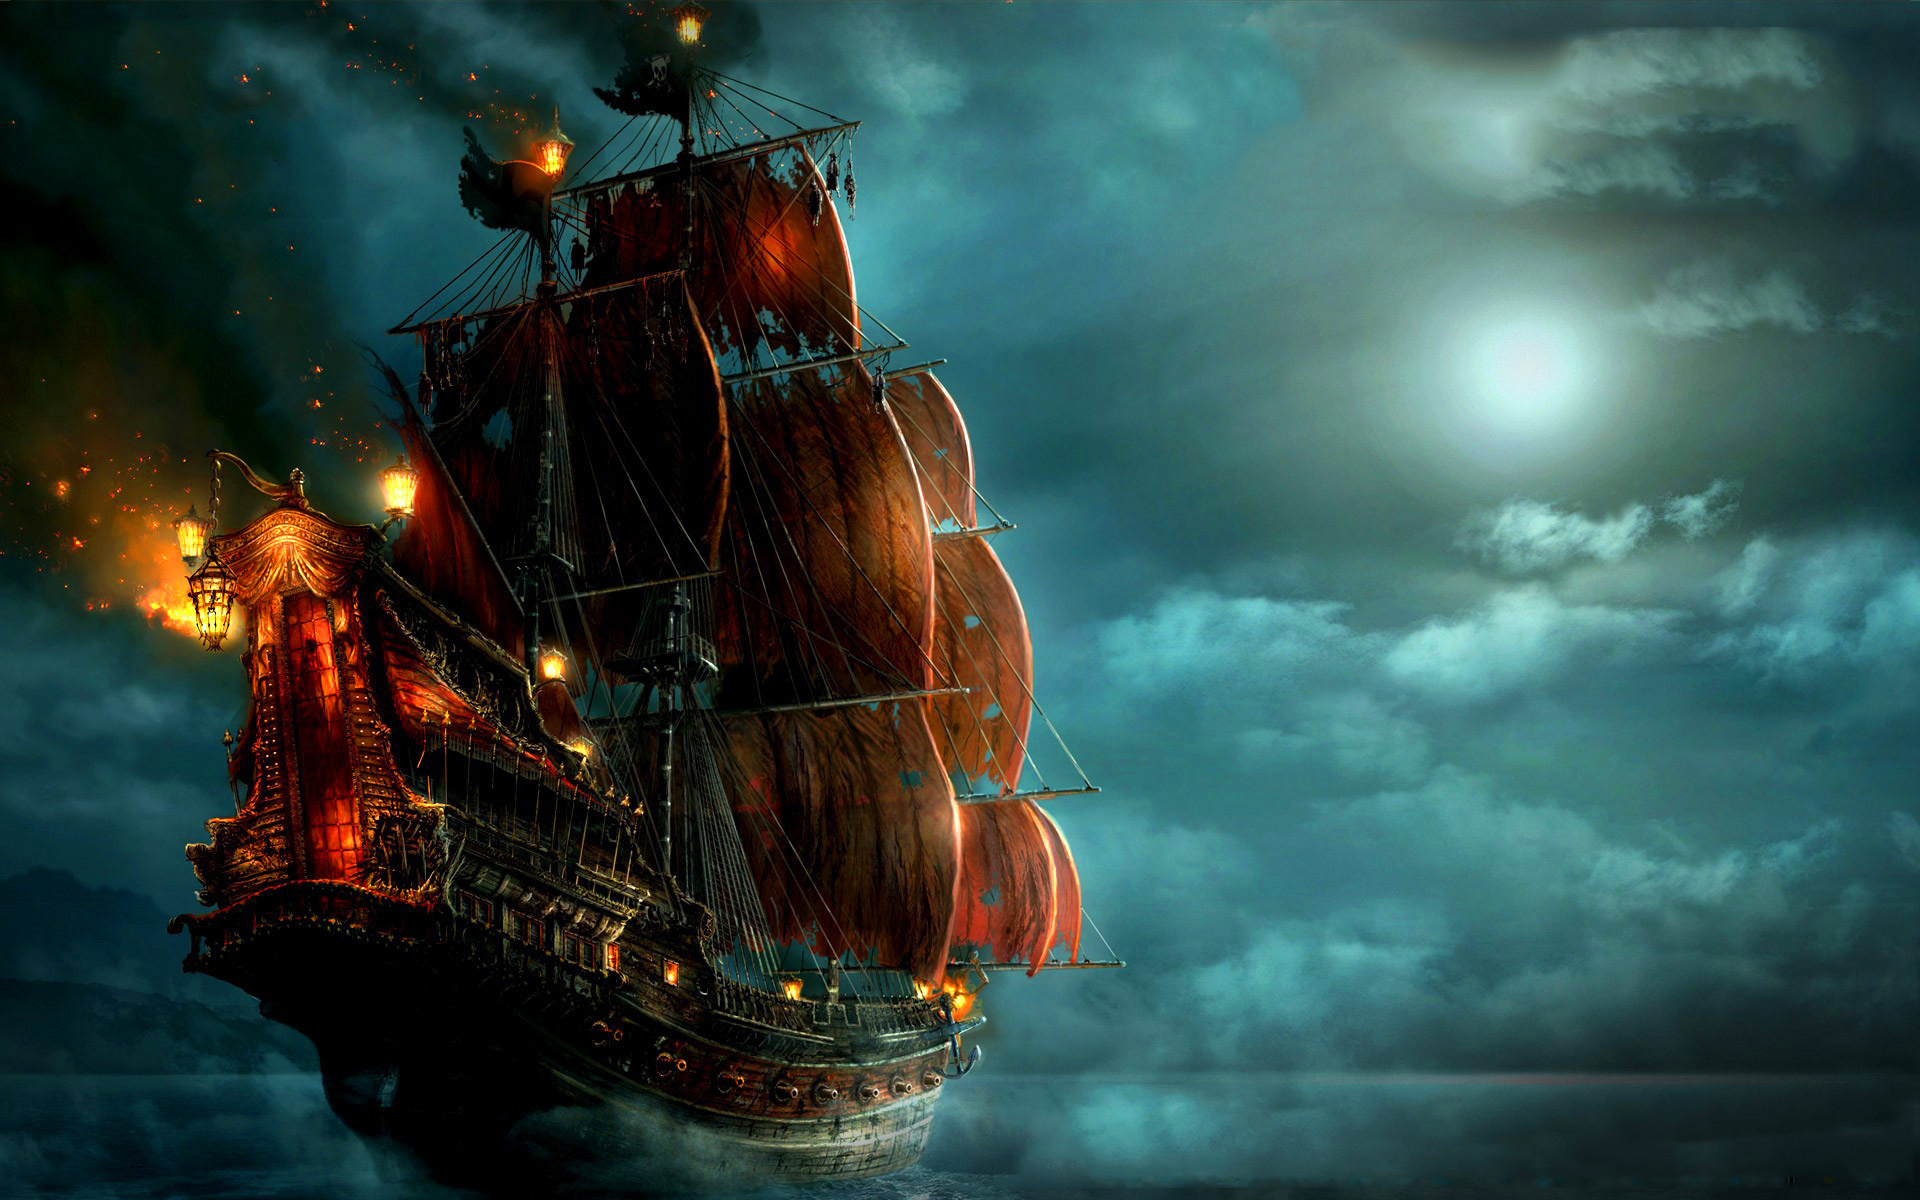 20355 download wallpaper Ships, Sea, Night, Pictures screensavers and pictures for free